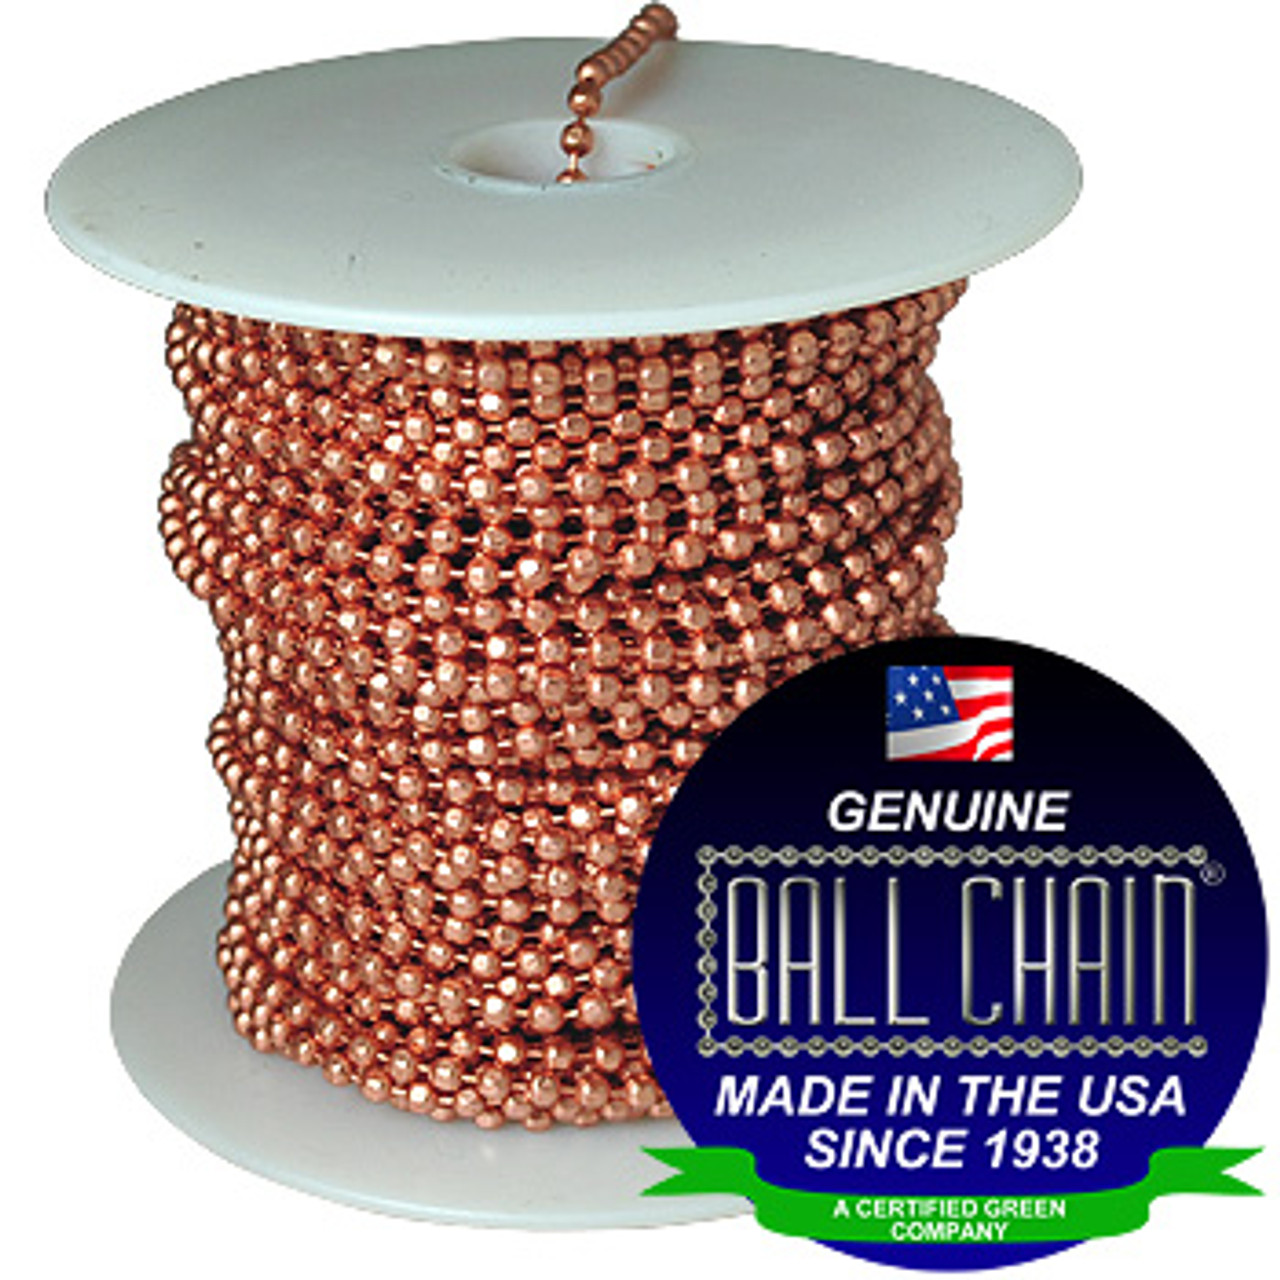 """#6 faceted style ball chain on a white plastic spool with the Ball Chain Manufacturing seal stating """"Made In The USA Since 1938"""" and """"Certified Green Business."""""""